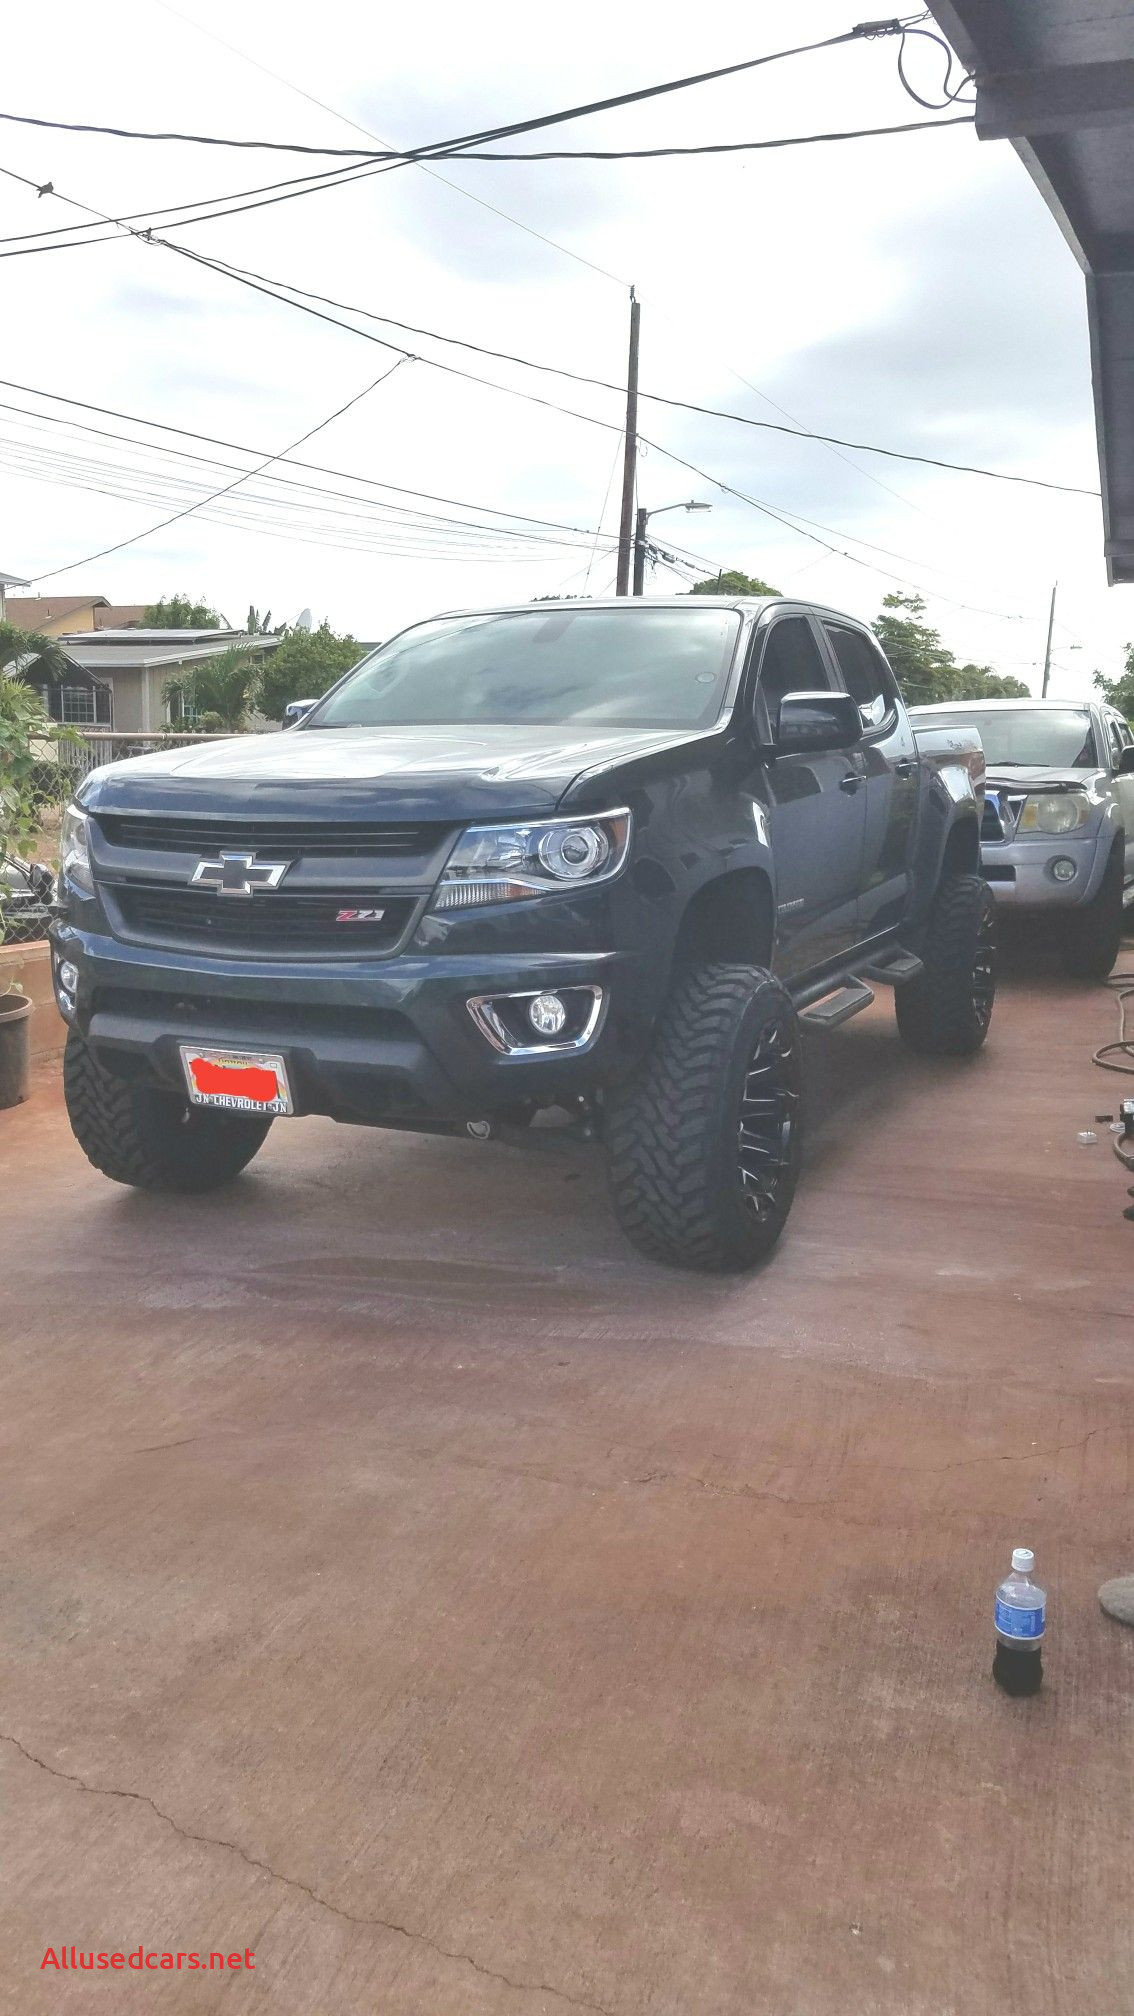 Elegant 09 Chevy Colorado